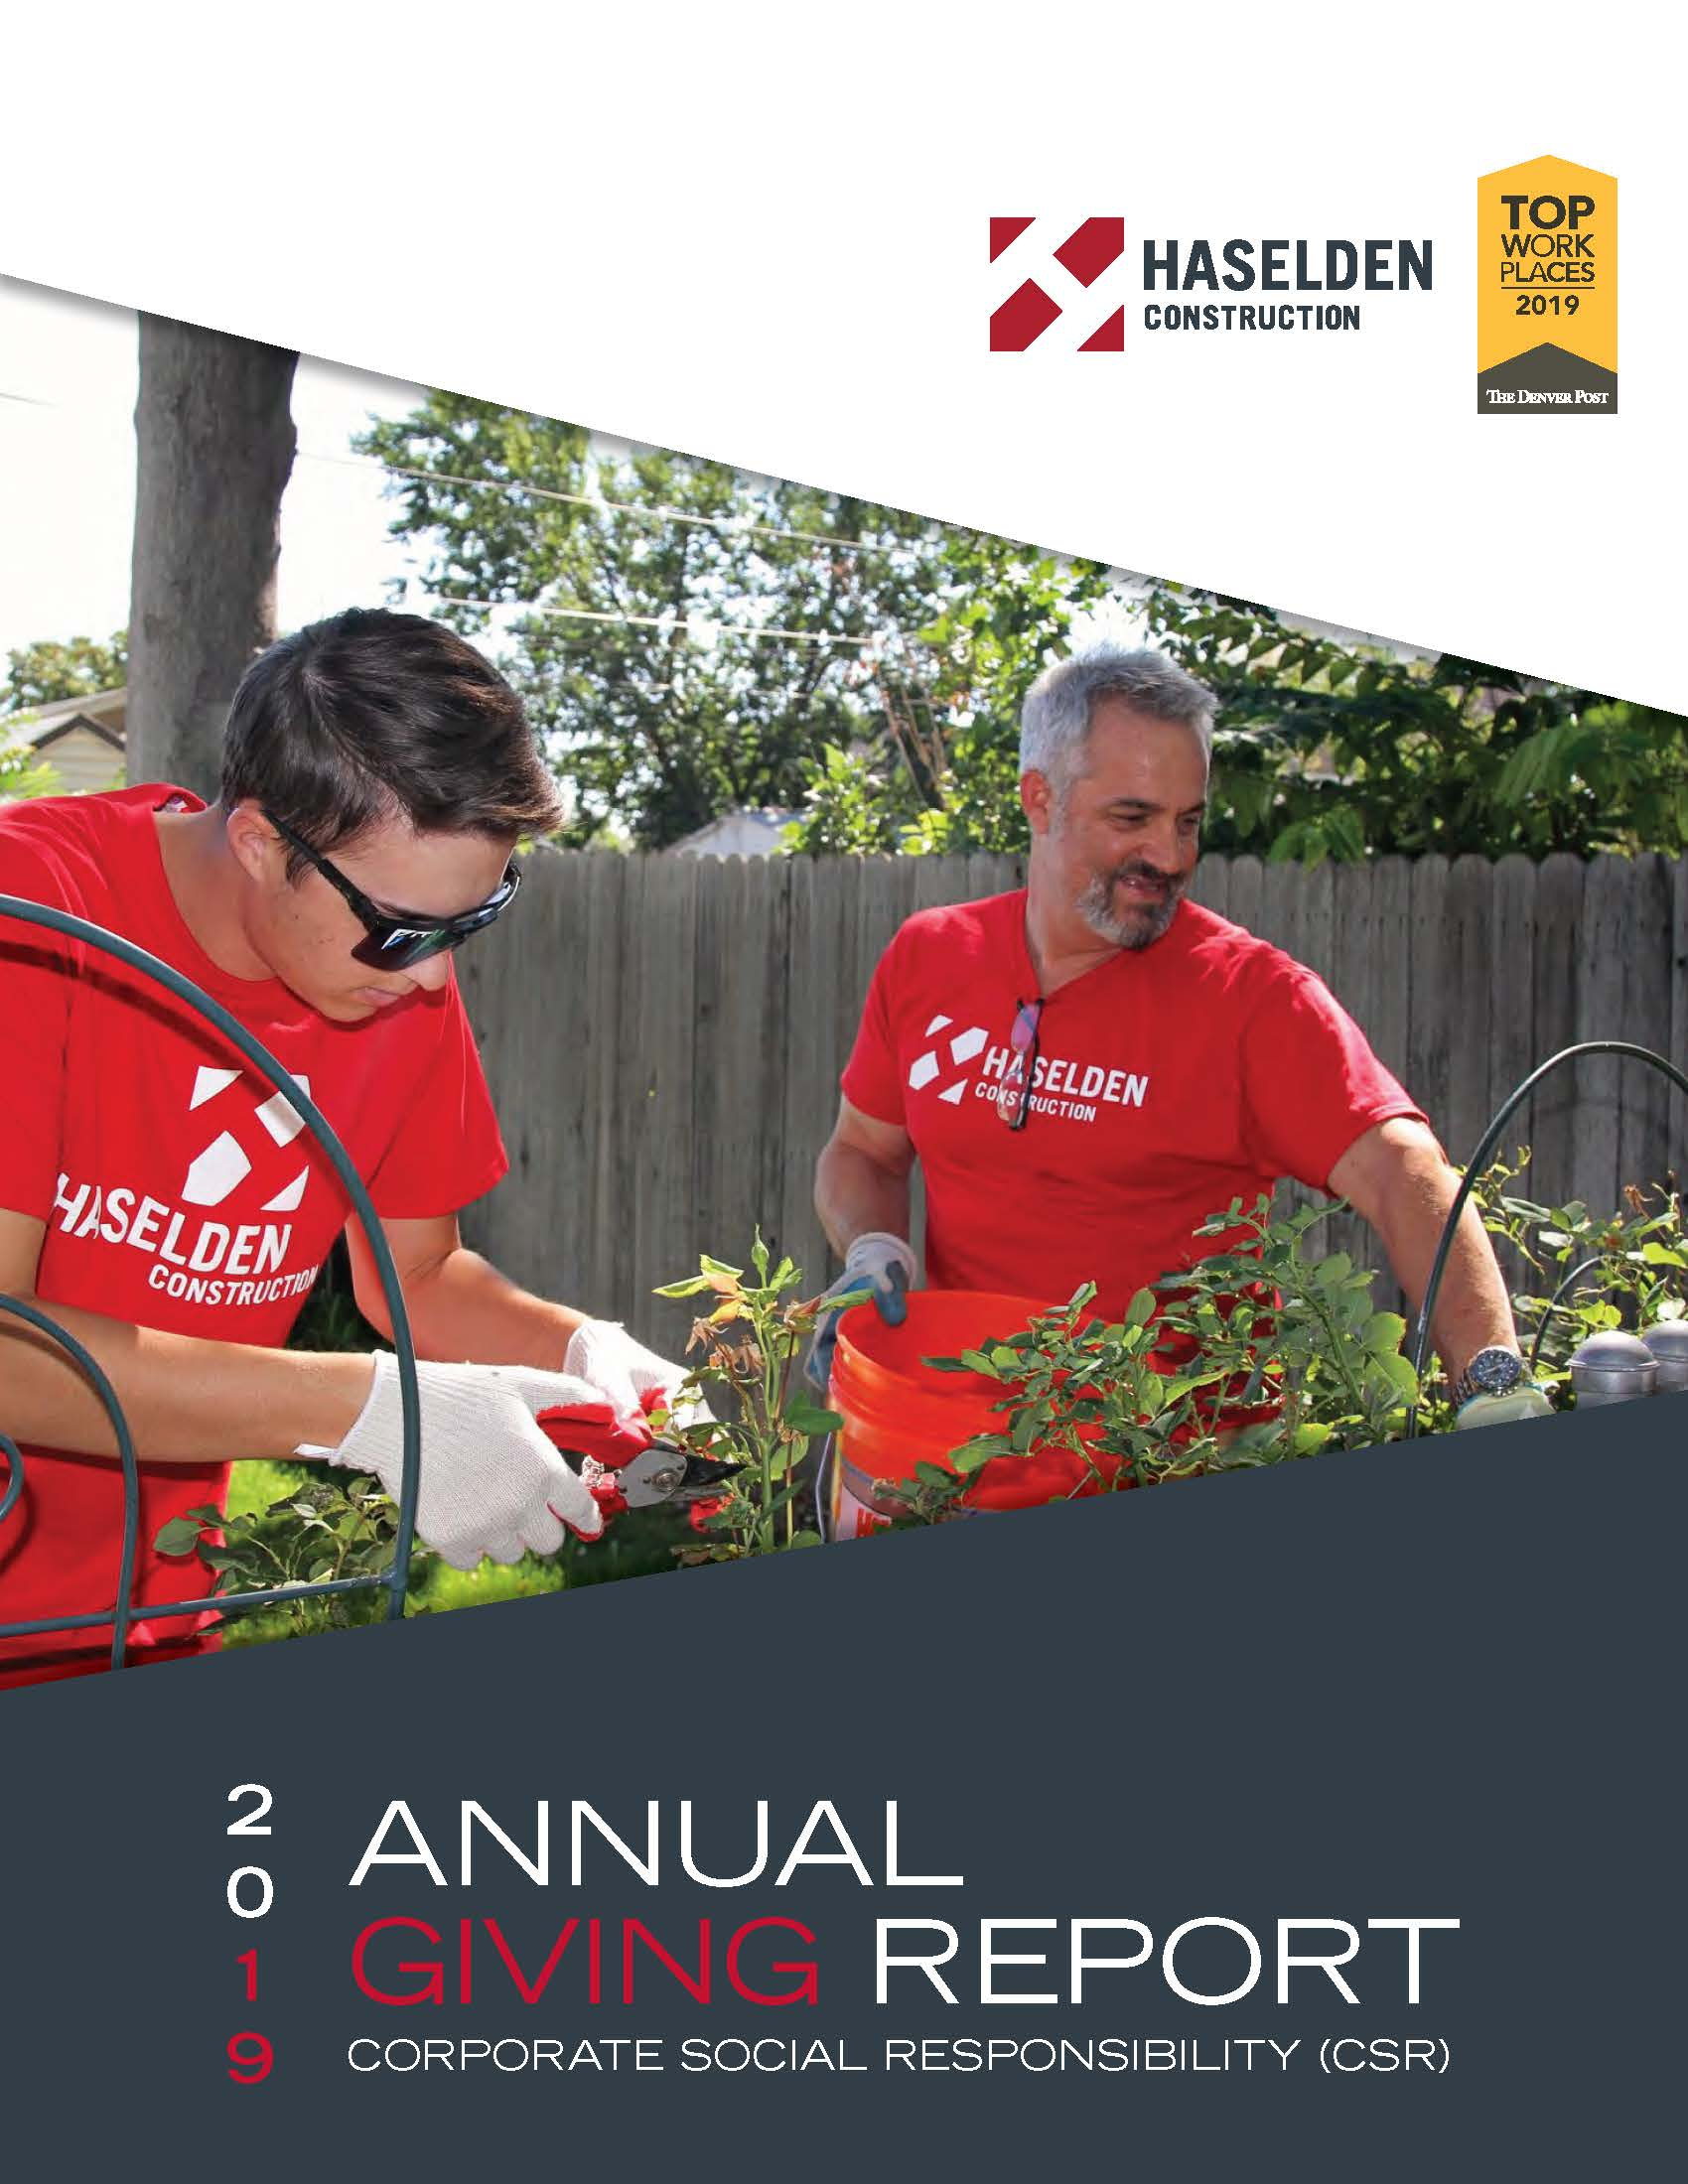 Haselden Construction Annual Giving Report